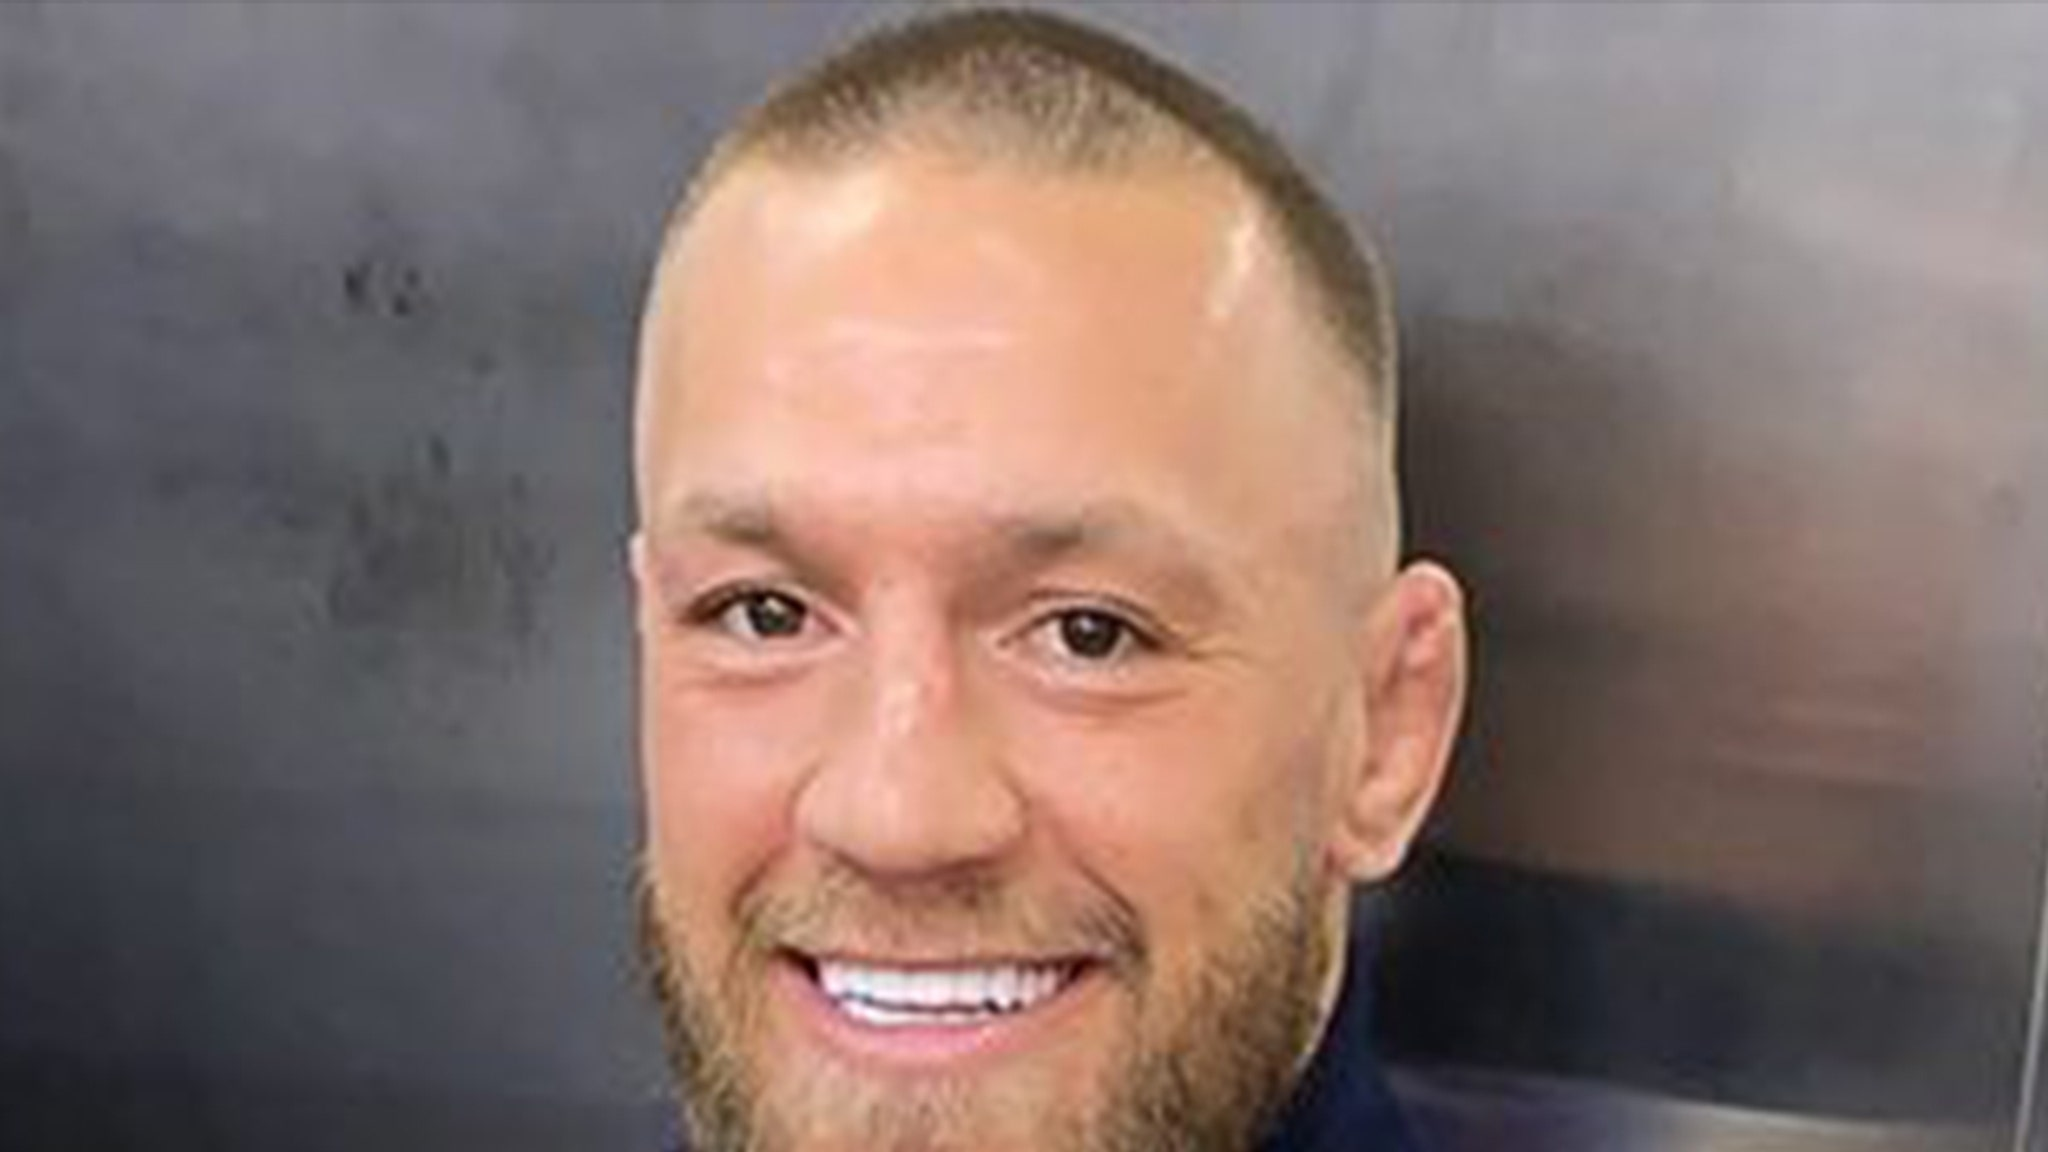 Conor McGregor Donates $500k To Louisiana Youth After Charity Spat With Poirier thumbnail